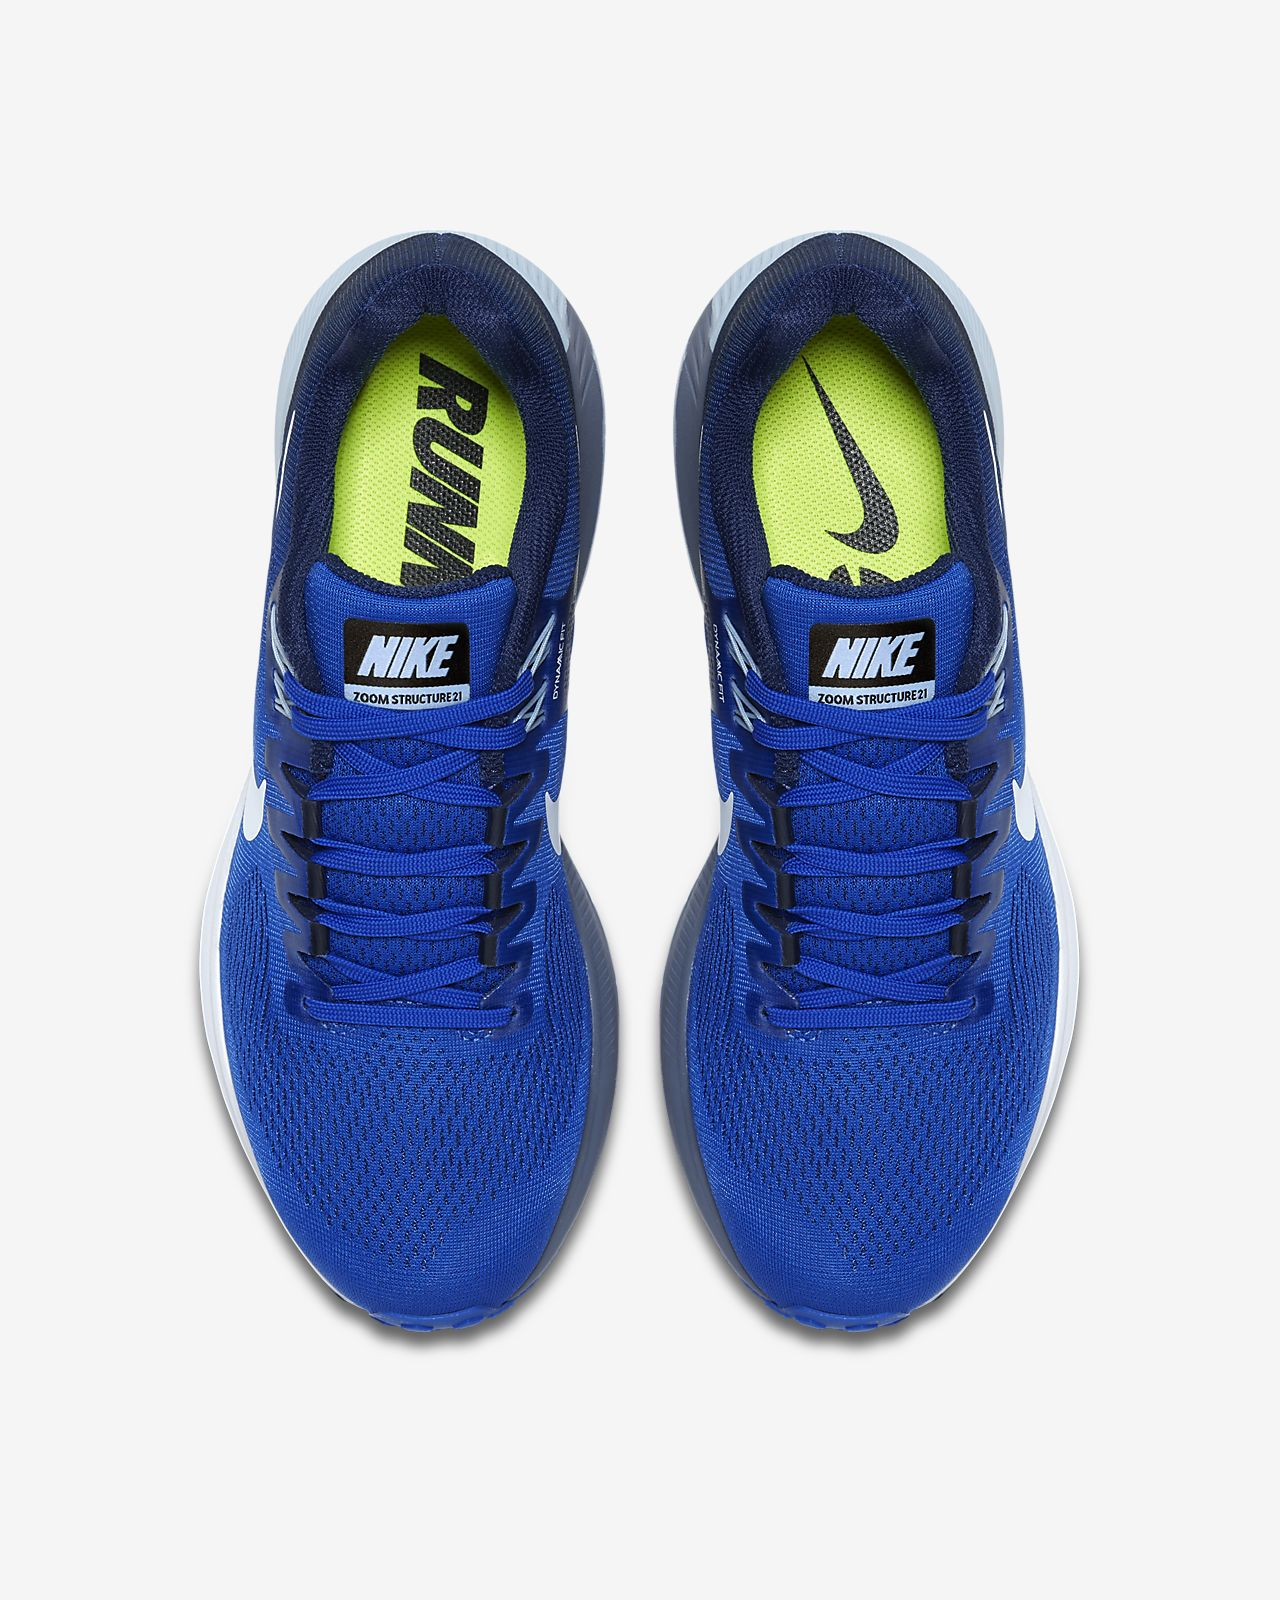 Nike Air Zoom Structure 21 cool greyanthracitevoltwhite a